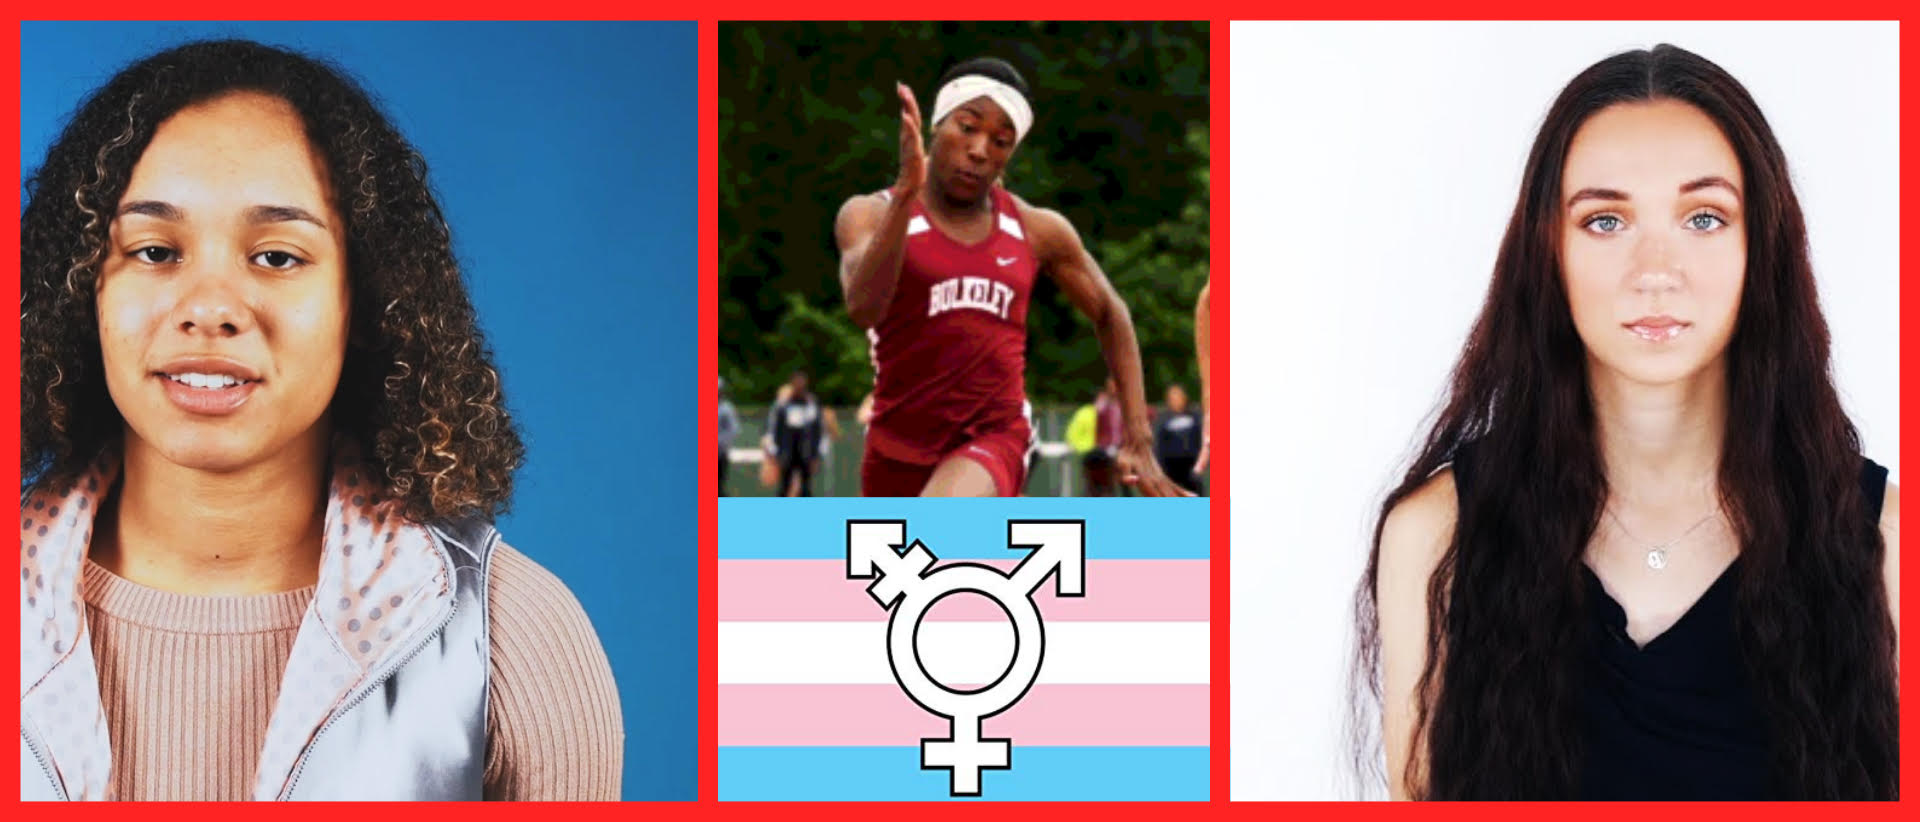 Policy Allowing Transgender Athletes In Sports Found To...